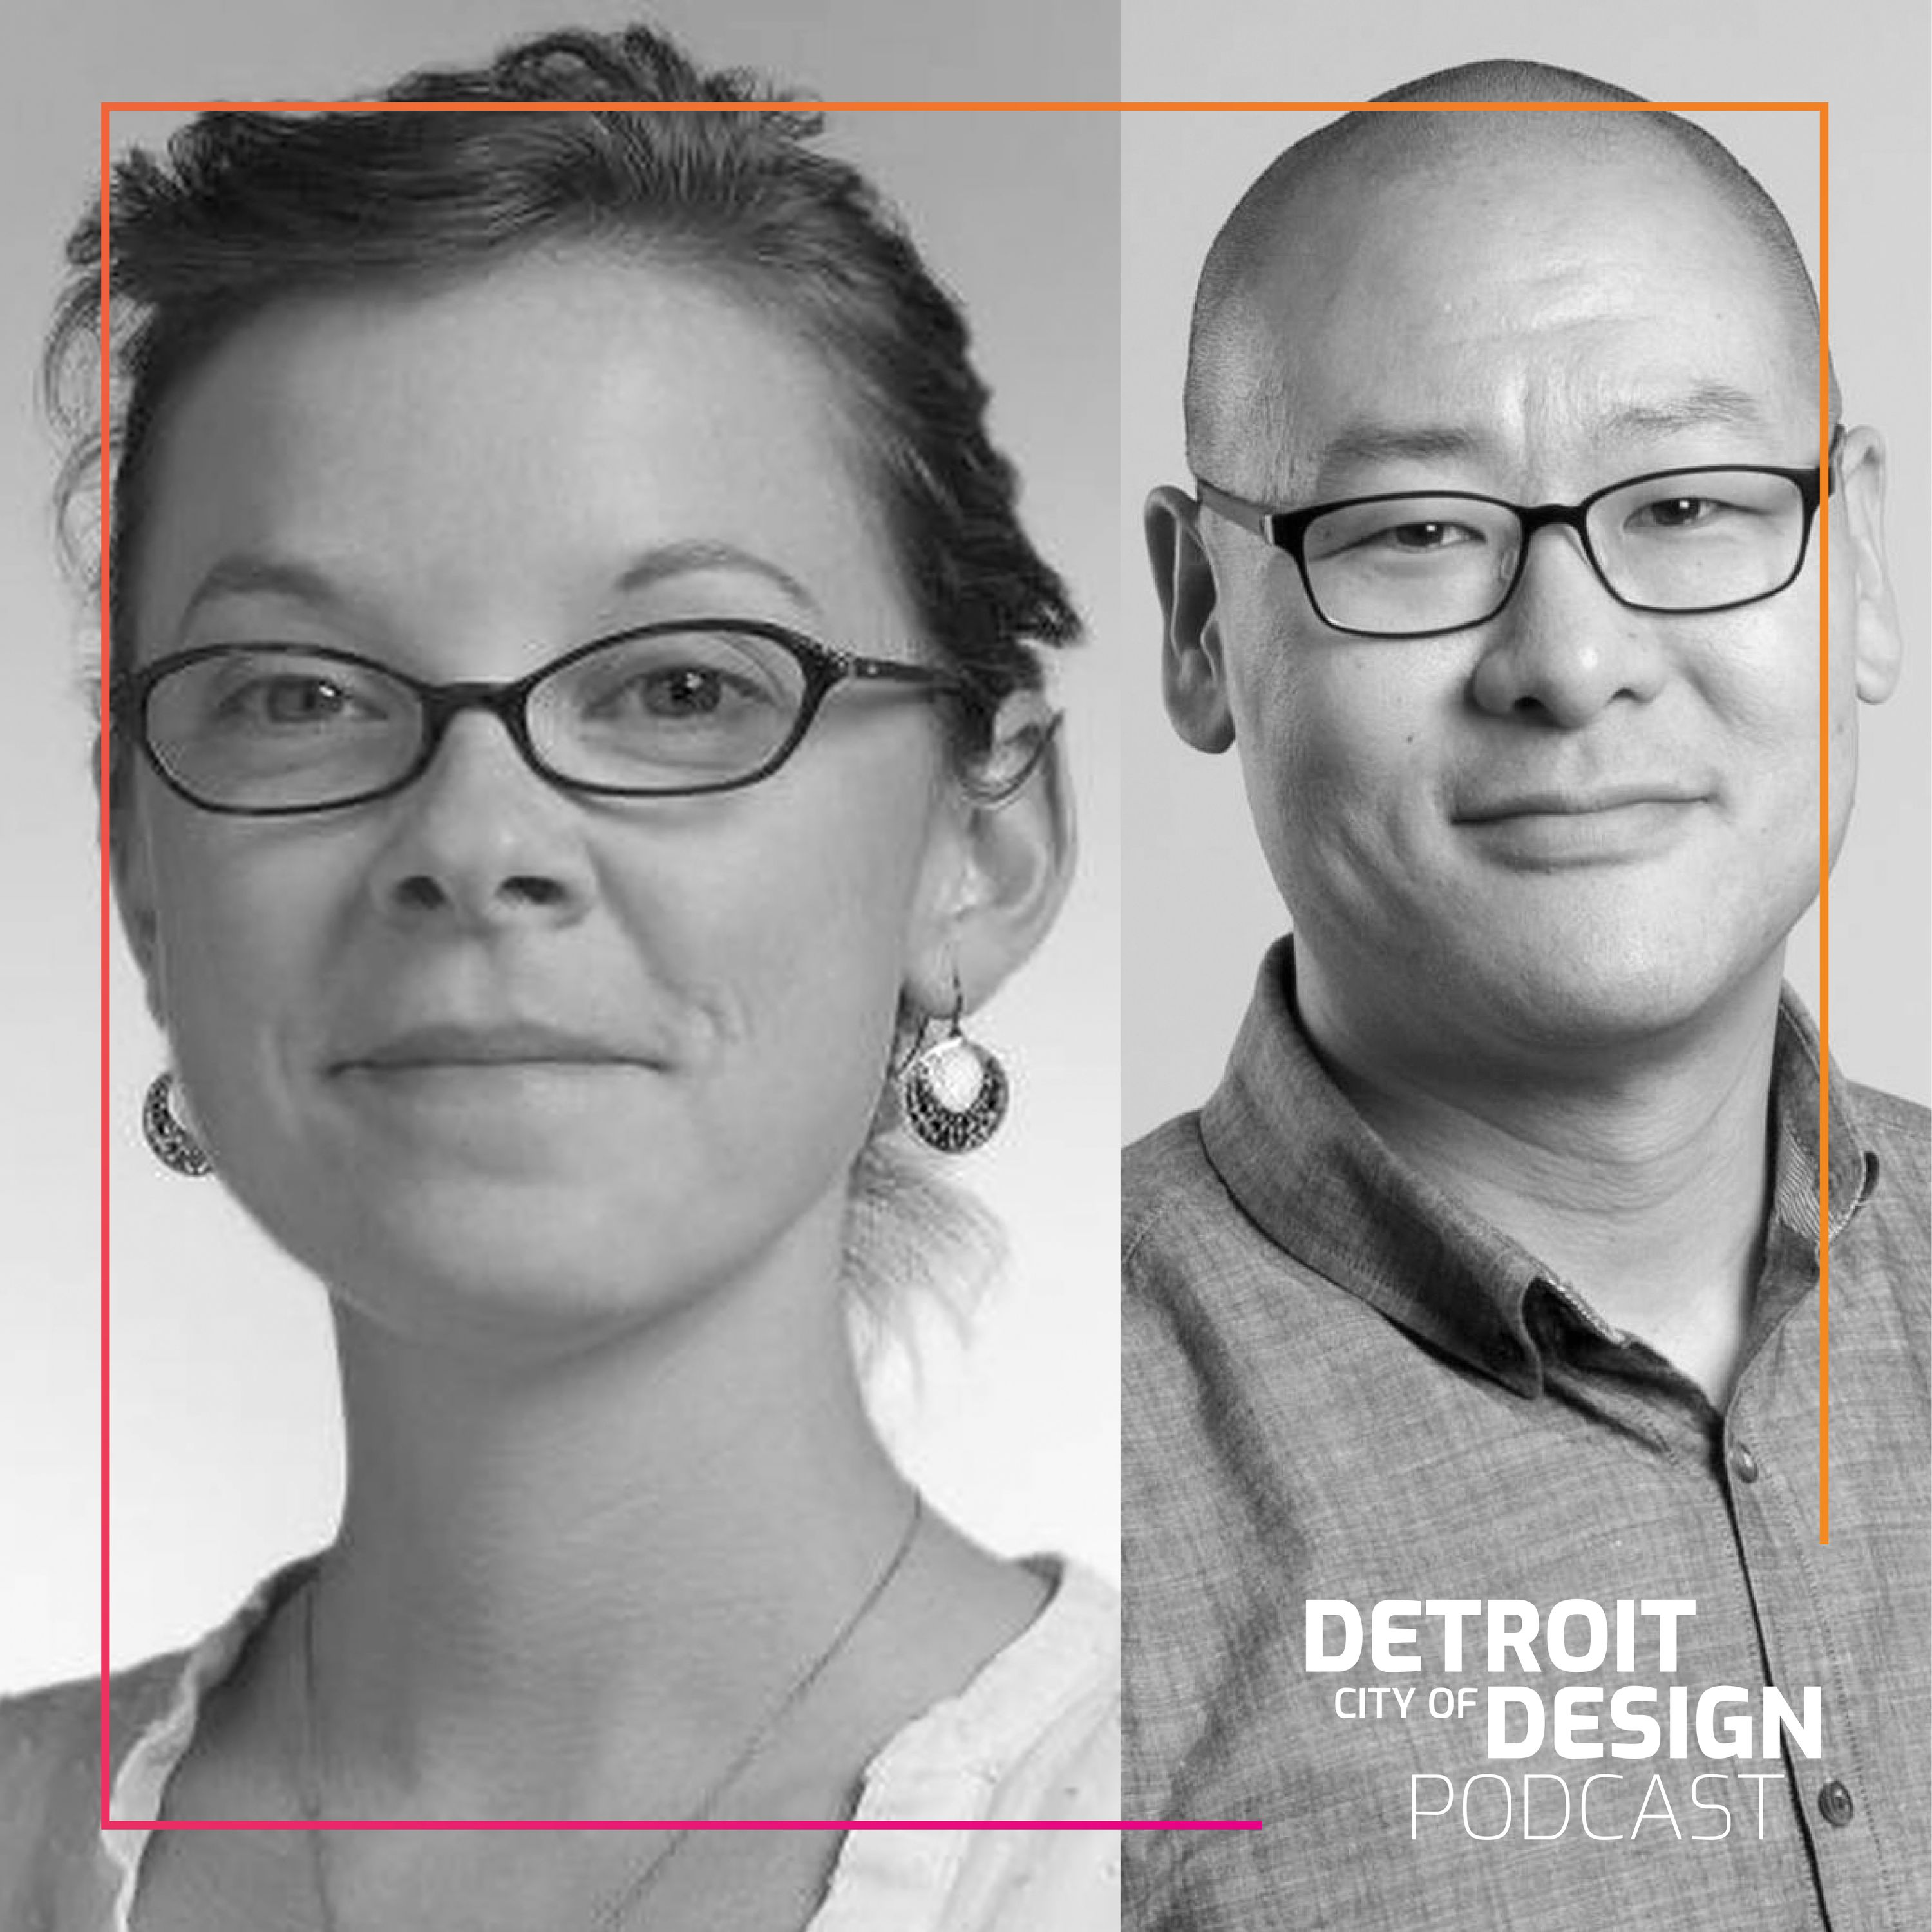 Dug Song and Sally Carson Discuss Design as a Bridge to Help Tech Companies Better Serve Communities and People